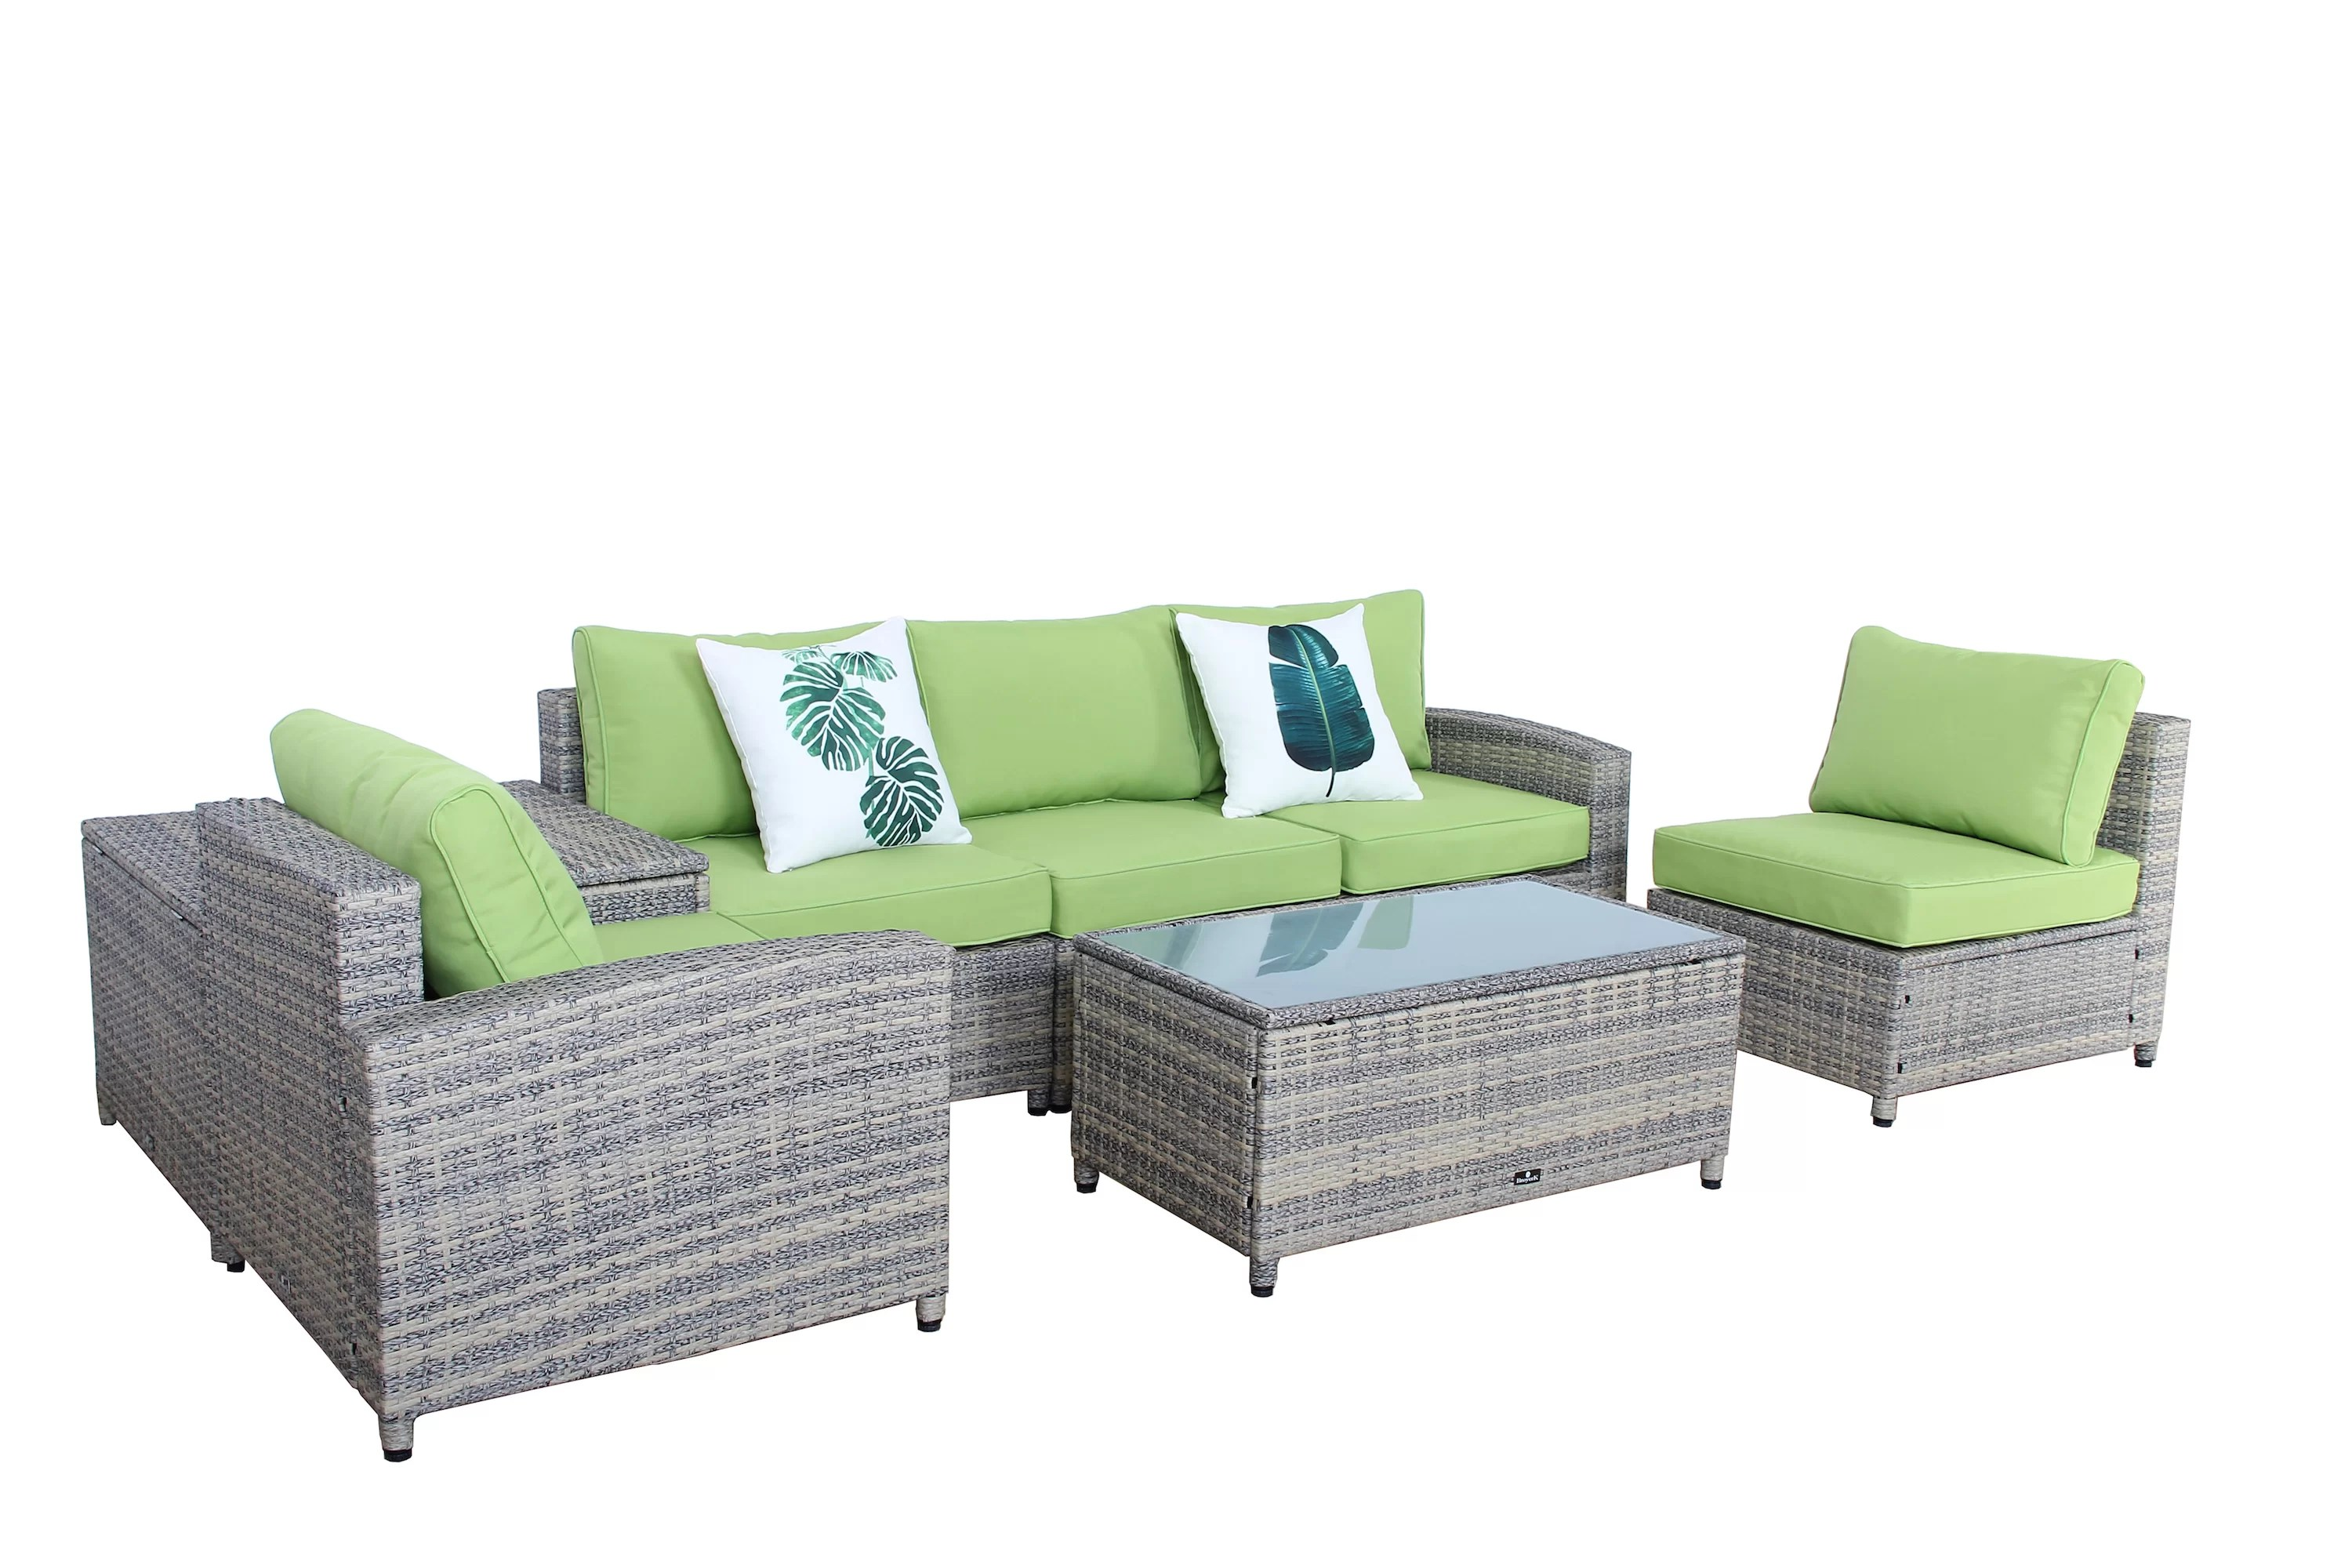 Rattan Sofa Ingrid 7 Piece Rattan Sofa Set With Cushions